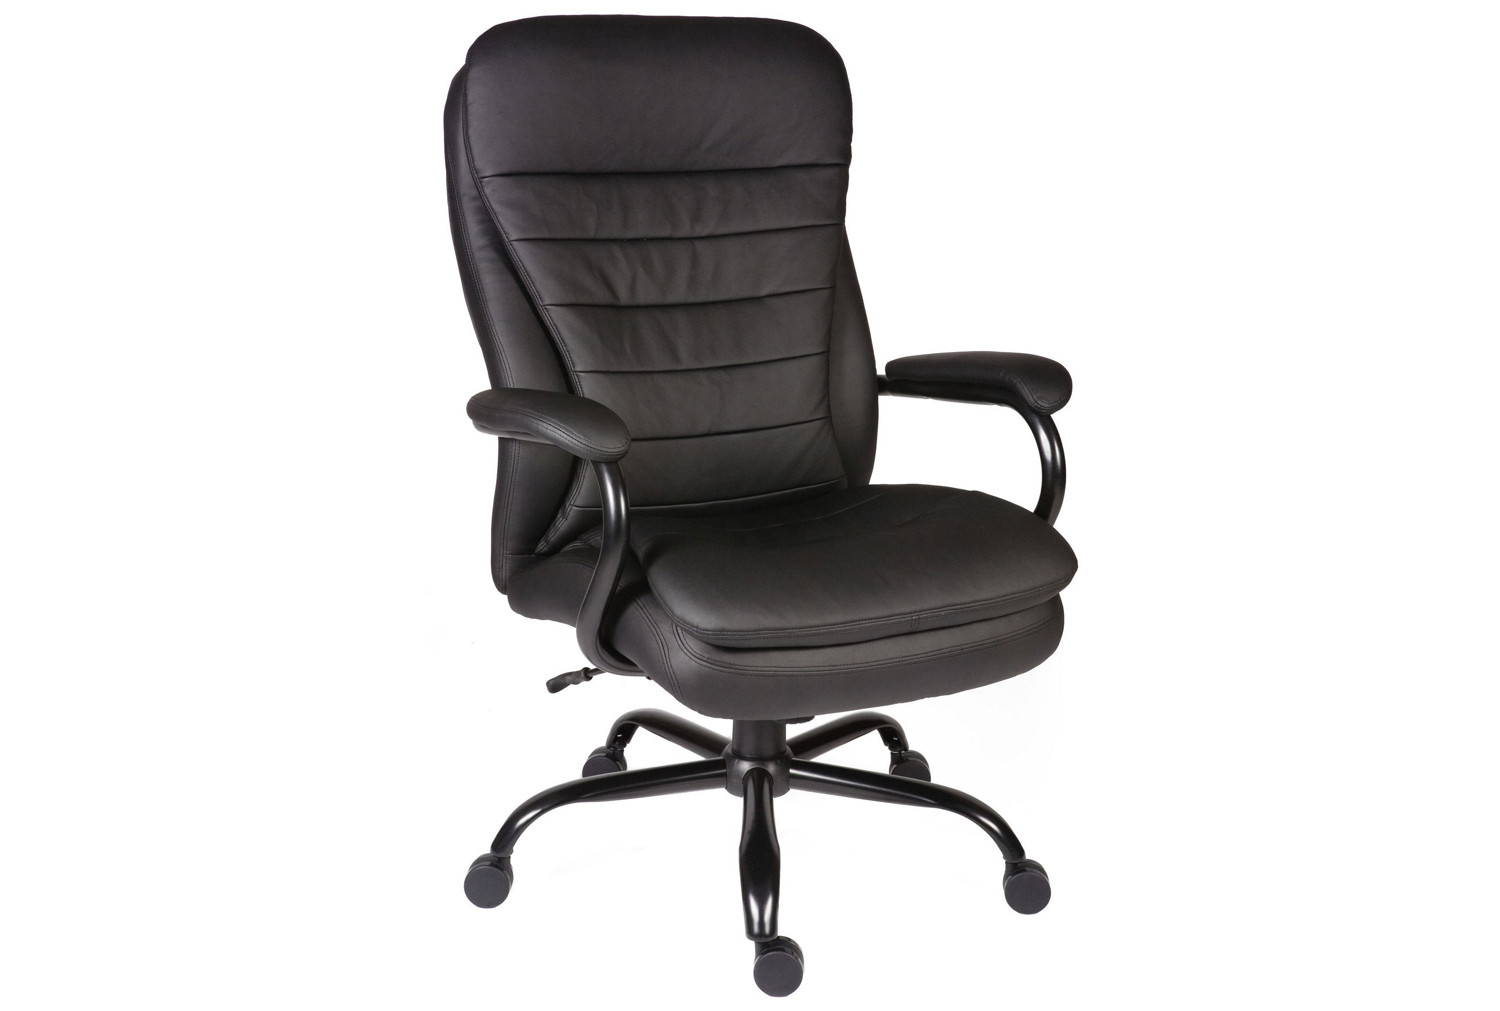 Next-Day Colossal Leather Faced Executive Chair